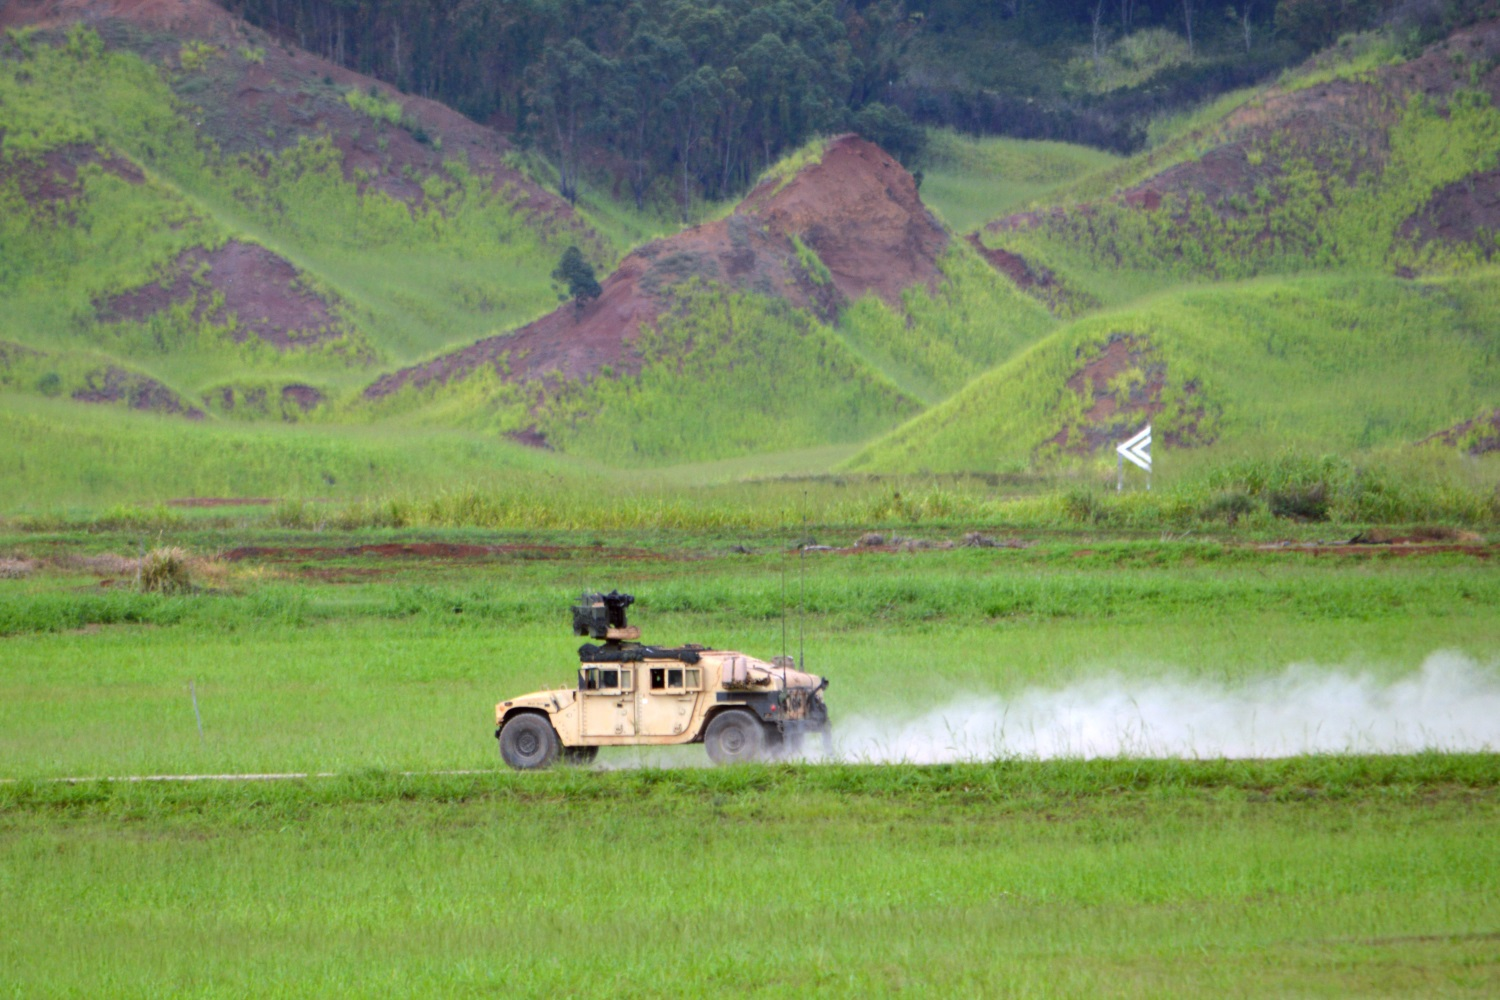 Soldiers assigned to the 3rd Brigade Combat Team, 25th Infantry Division, race their M115A1 HMWVV to the next target to engage it with an M153 Common Remotely Operated Weapon Station (CROWS) at the Battle Area Complex (BAX), Schofield Barracks, Hawaii, on Nov. 7, 2107. The soldiers participated in a crew gunnery to qualify with their weapon systems before depart for the Joint Readiness Training Center located at Fort Polk, La., next year. (Staff Sgt. Armando R. Limon/Army)